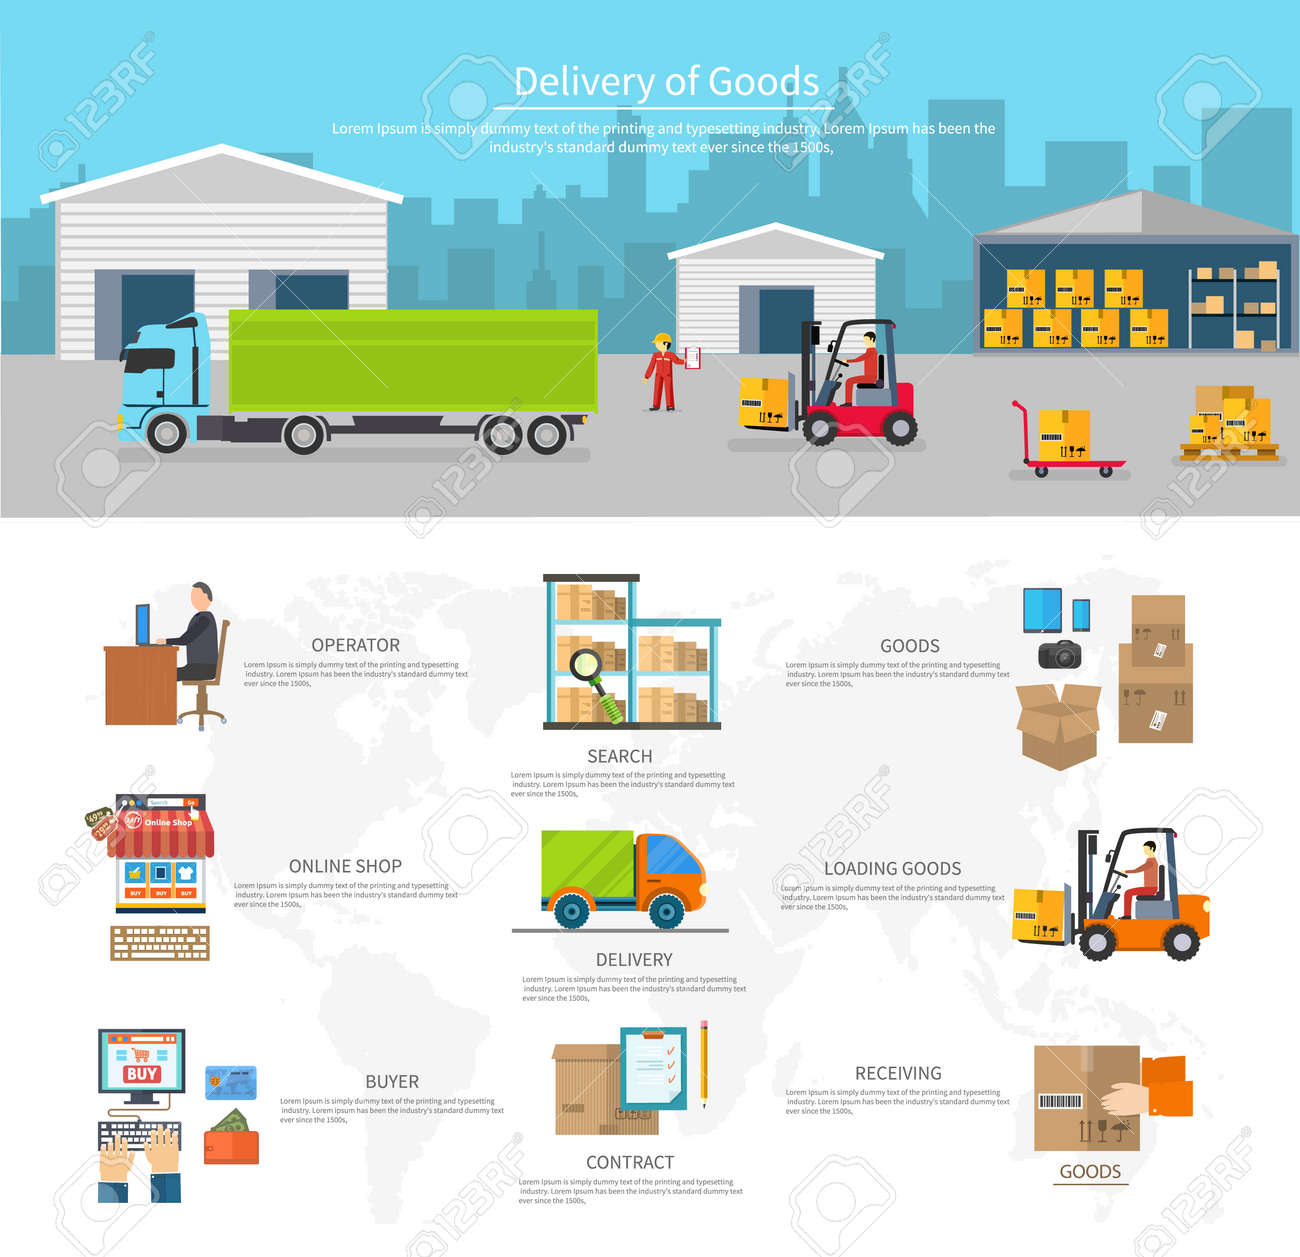 Delivery of goods logistics and transportation. Buyer and contract, loading and search, operator shop on-line, logistic and transportation, warehouse service illustration - 45981936